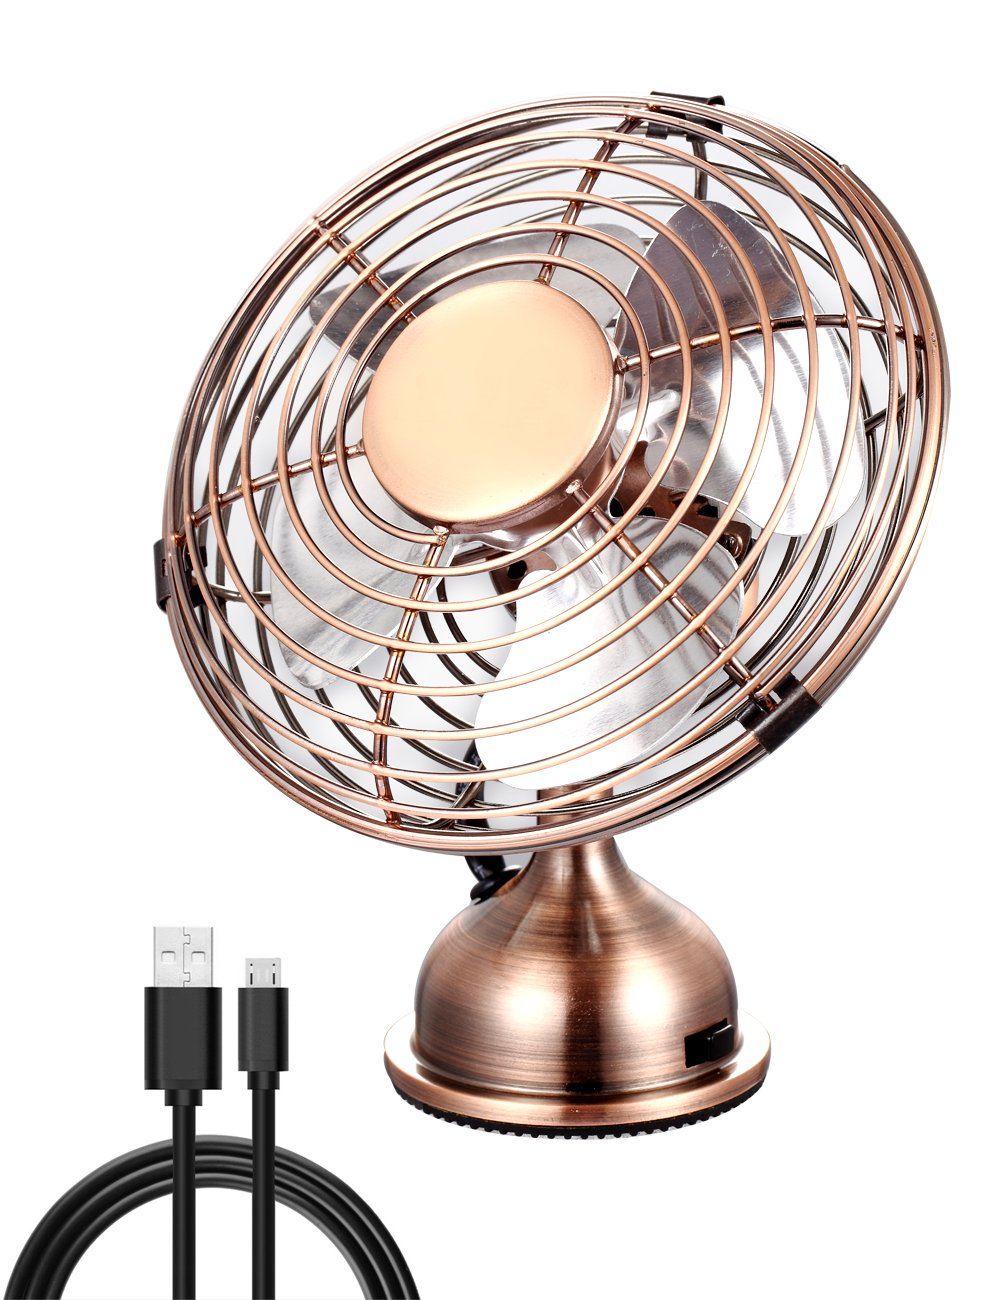 AirArtDeco USB Desktop Cooling Fan (4 Inch), Quiet Operation, Metal Design,Art Deco Desk Fan, Powerful Fan for Home and Office - Bronze Electroben